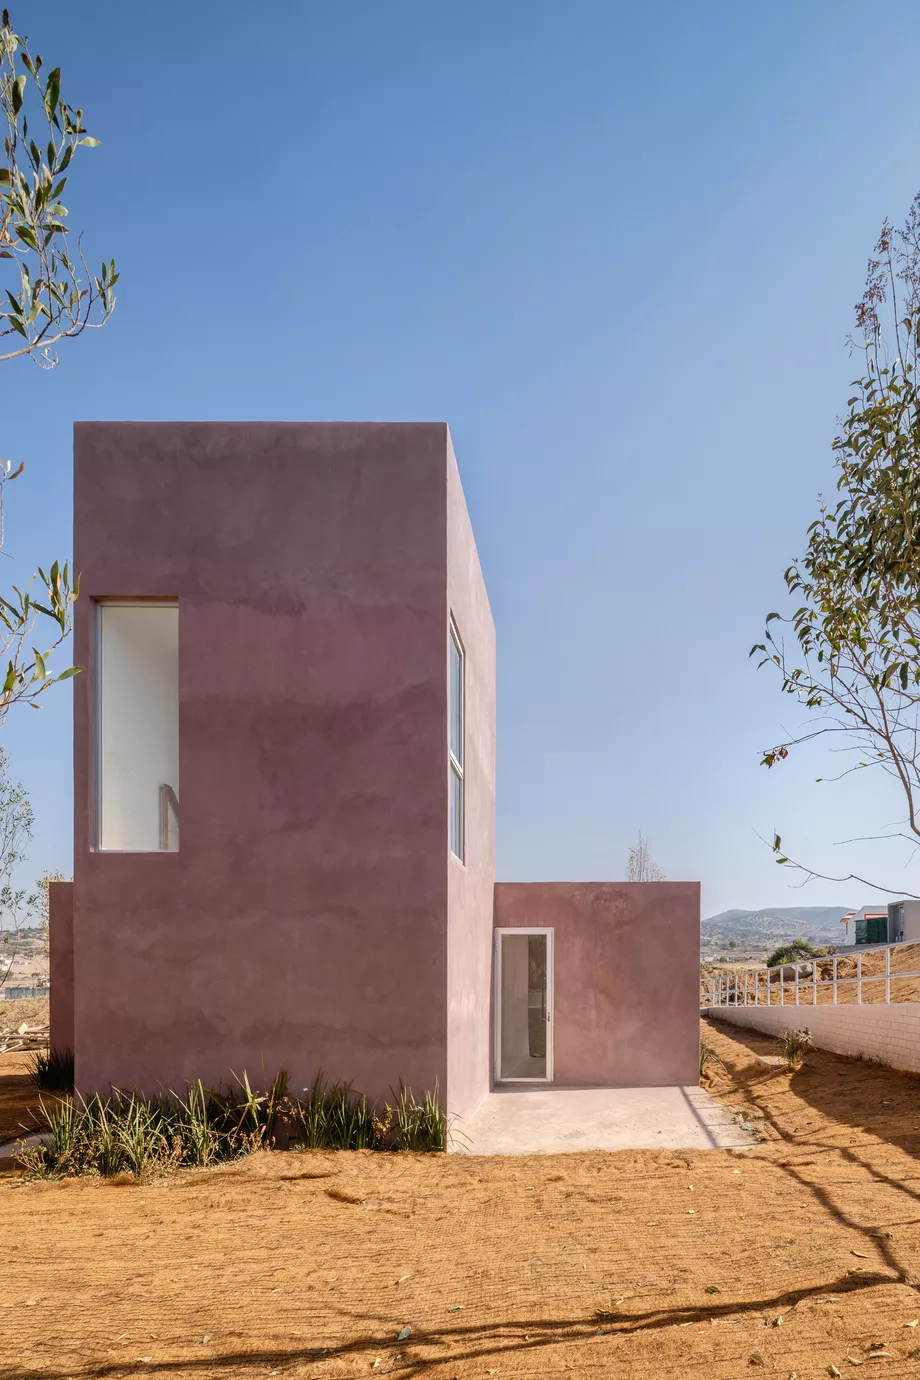 Pink Concrete Home Is An Affordable Housing Prototype In Mexico Curbed In 2020 Building Systems Architecture Affordable Housing